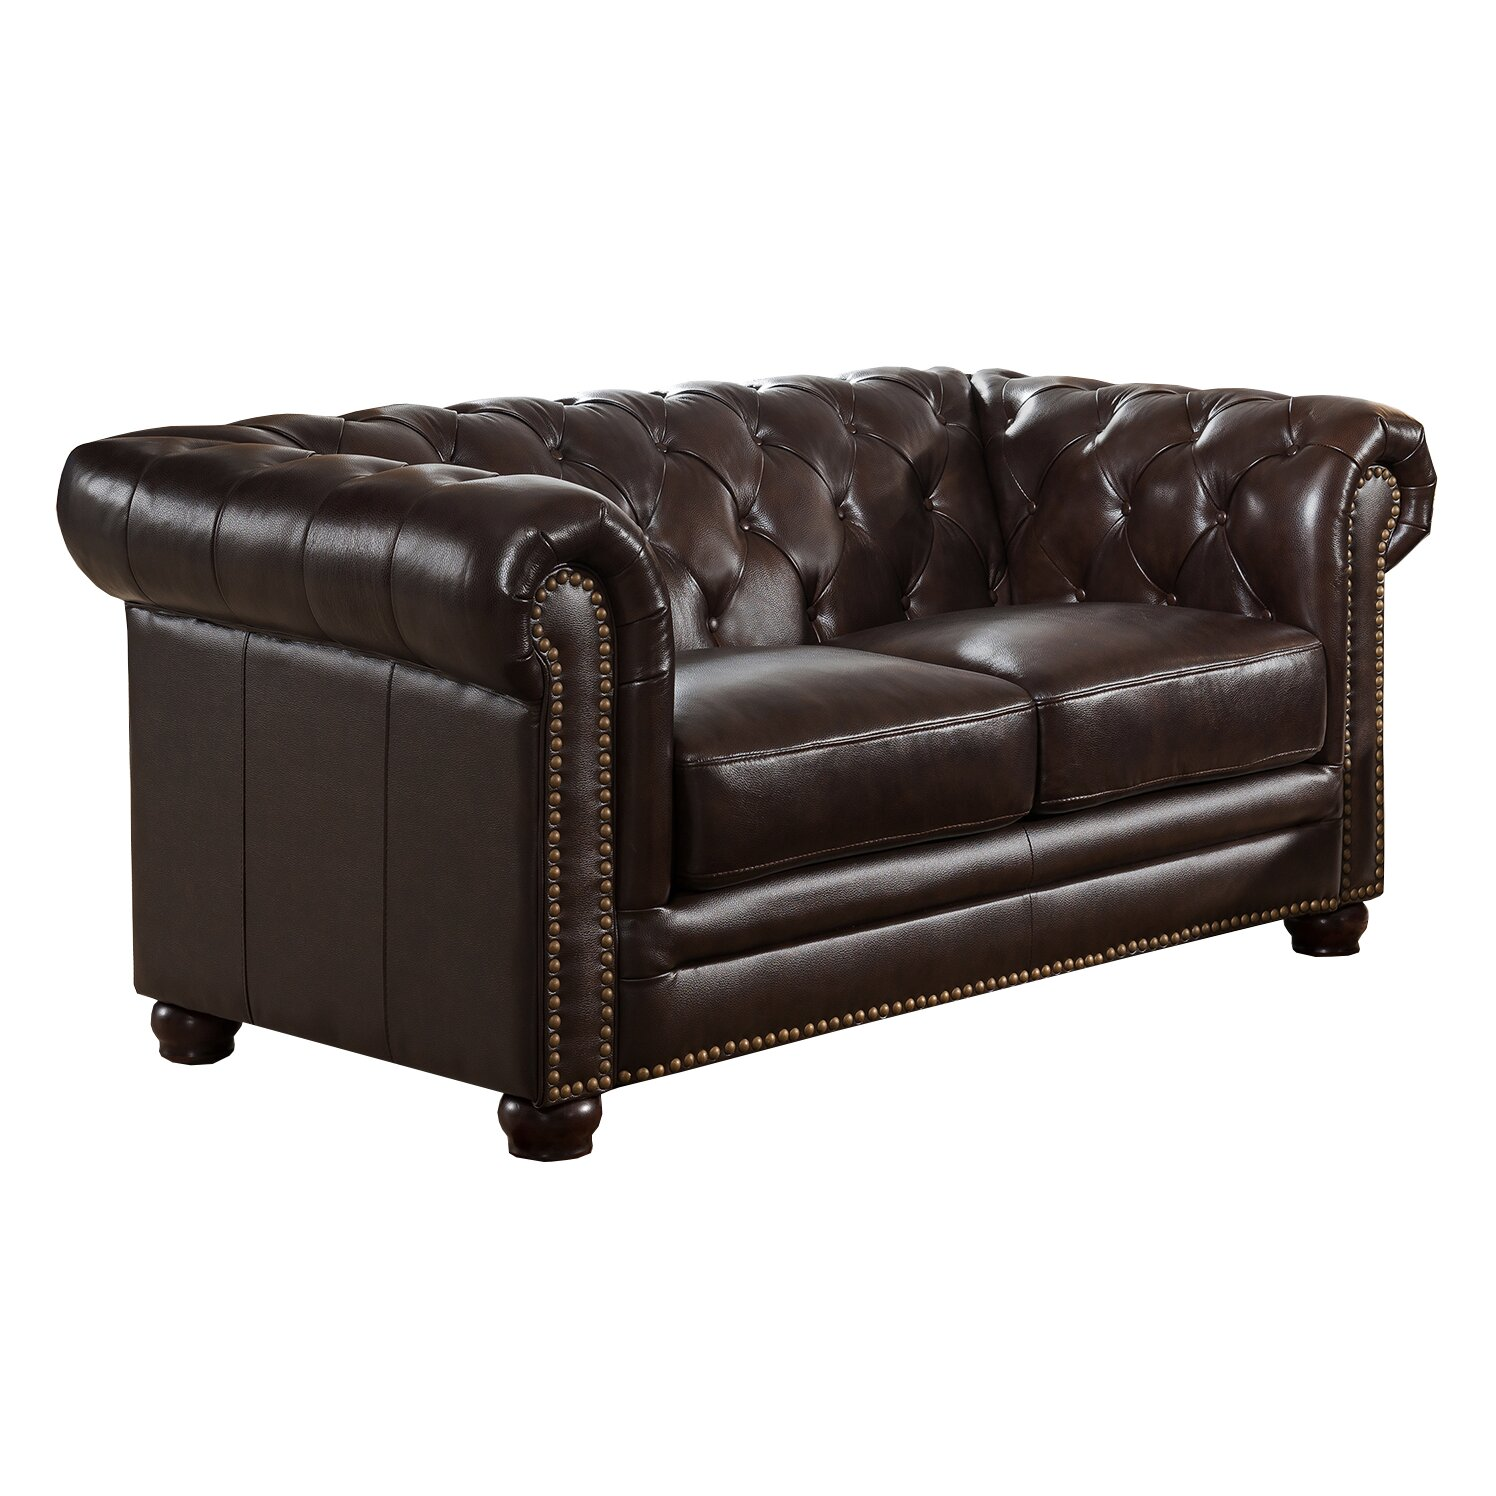 Amax kensington top grain leather chesterfield sofa for Leather sofa and loveseat set